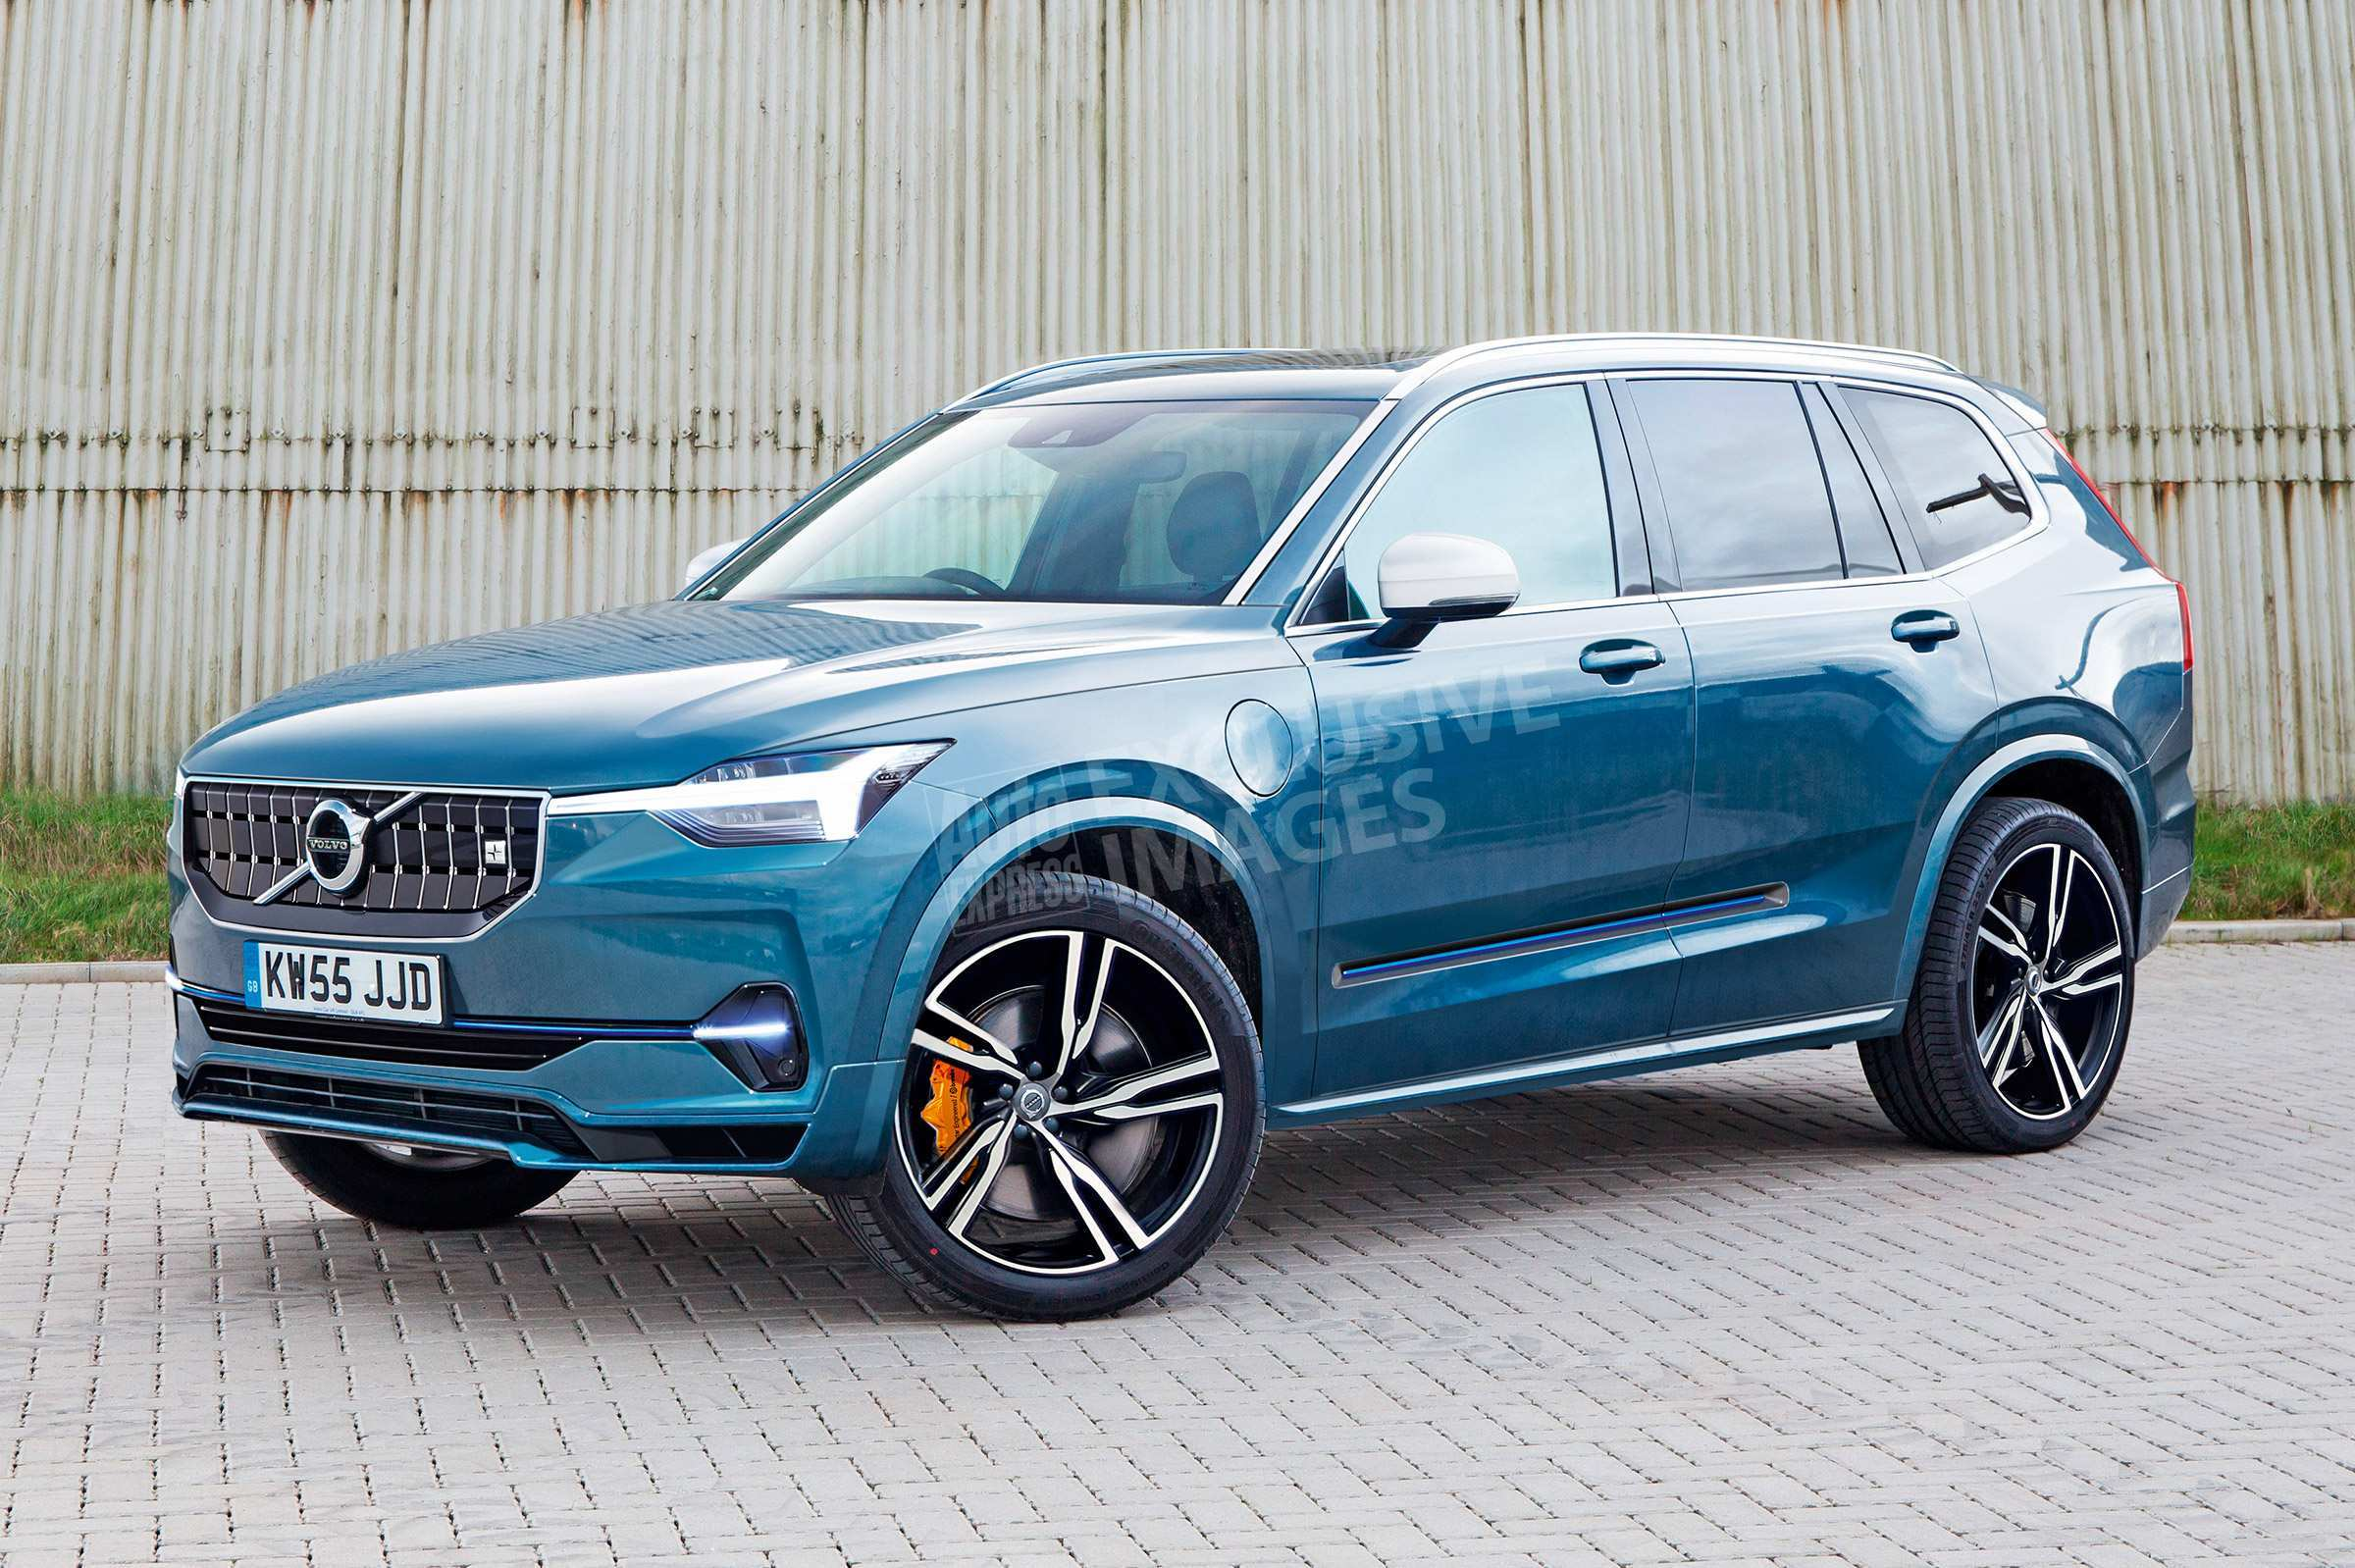 54 Great Volvo Range 2020 Review with Volvo Range 2020